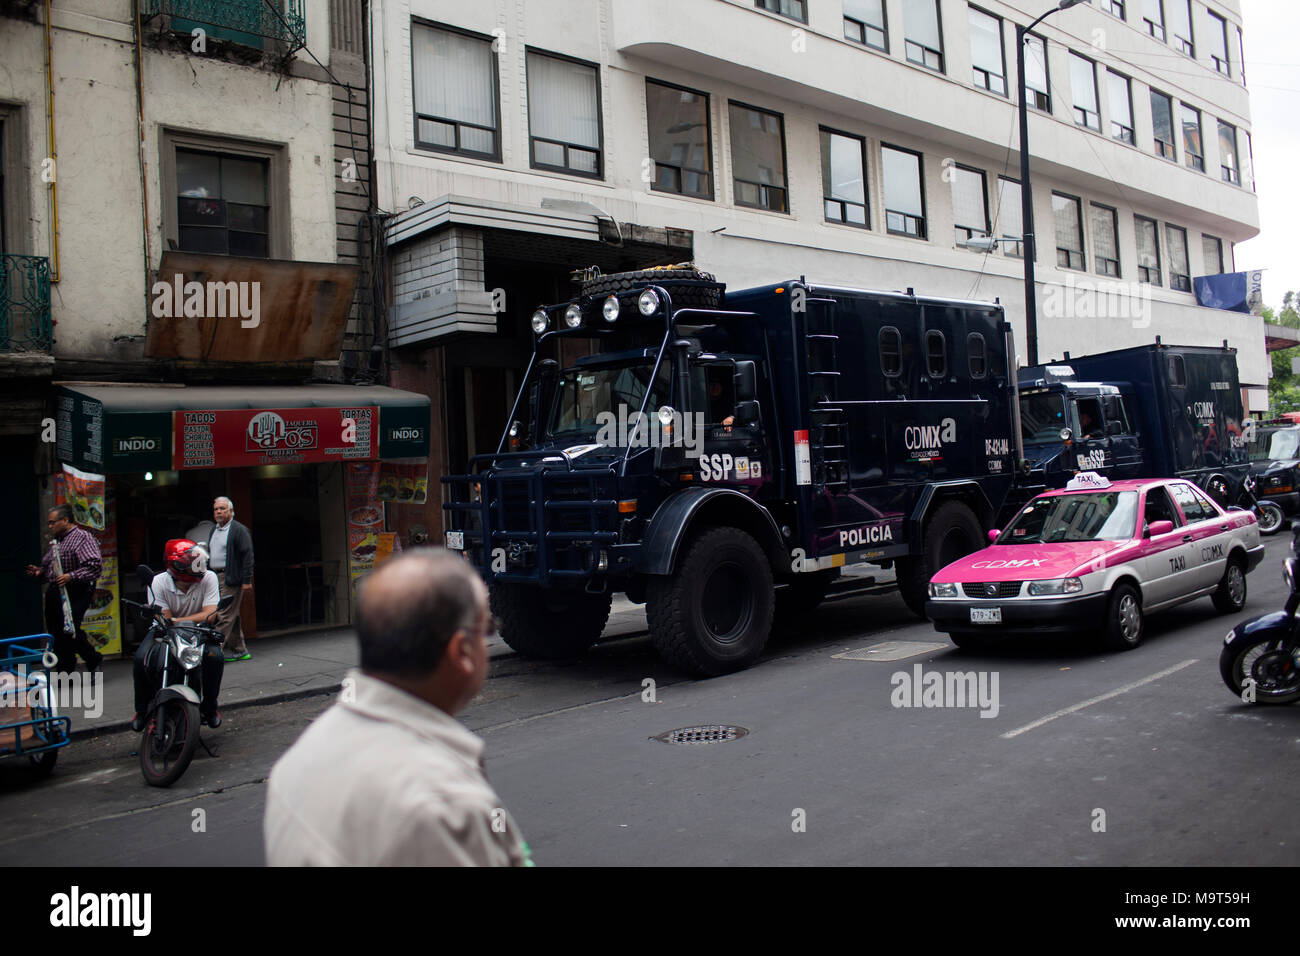 Mexican Police trucks parked on a side road prior to a protest in Mexico City, Mexico on Monday, June 1, 2015. Numerous protests have occurred prior to Mexico's midterm elections. - Stock Image